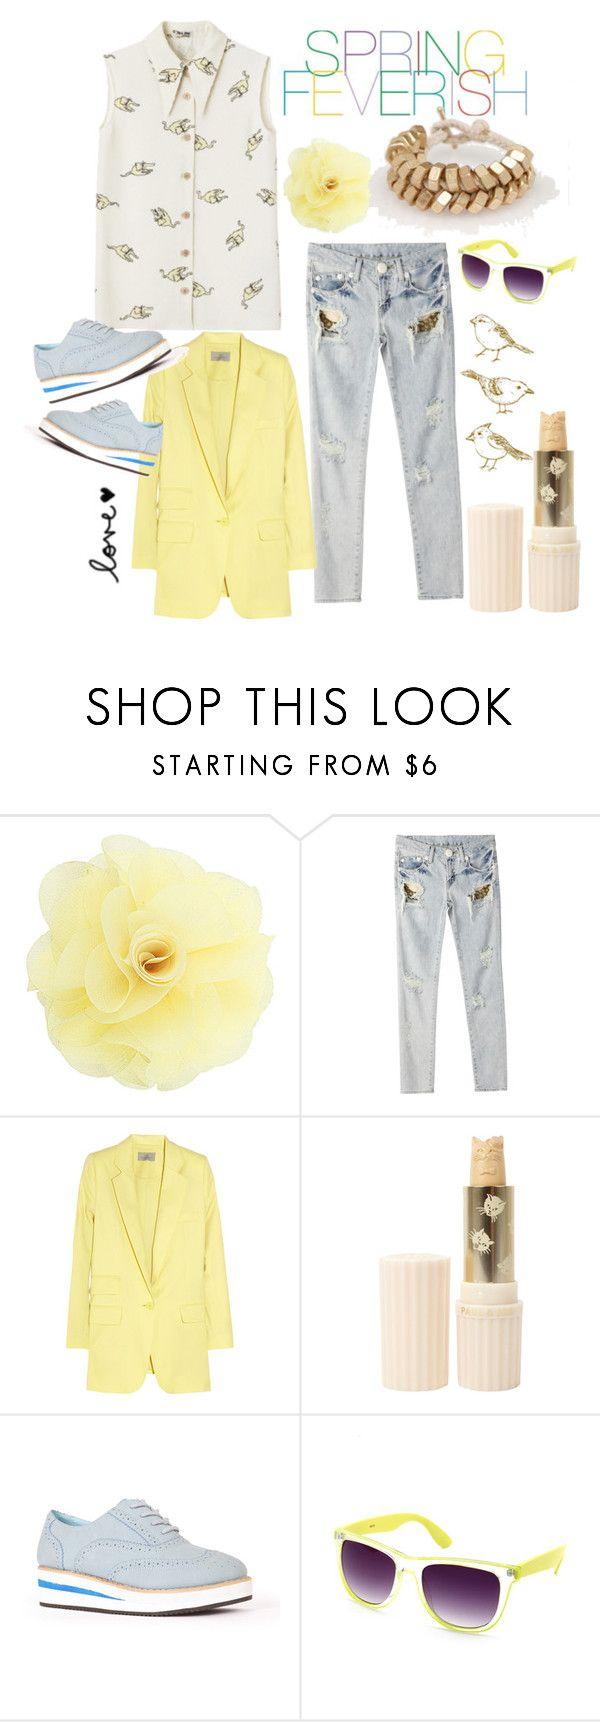 """""""Yellow fever"""" by cara-kitty ❤ liked on Polyvore featuring Dorothy Perkins, Miu Miu, Preen, FEVERISH, Paul & Joe, Charlotte Russe, ripped jeans, blue, gold and colour"""